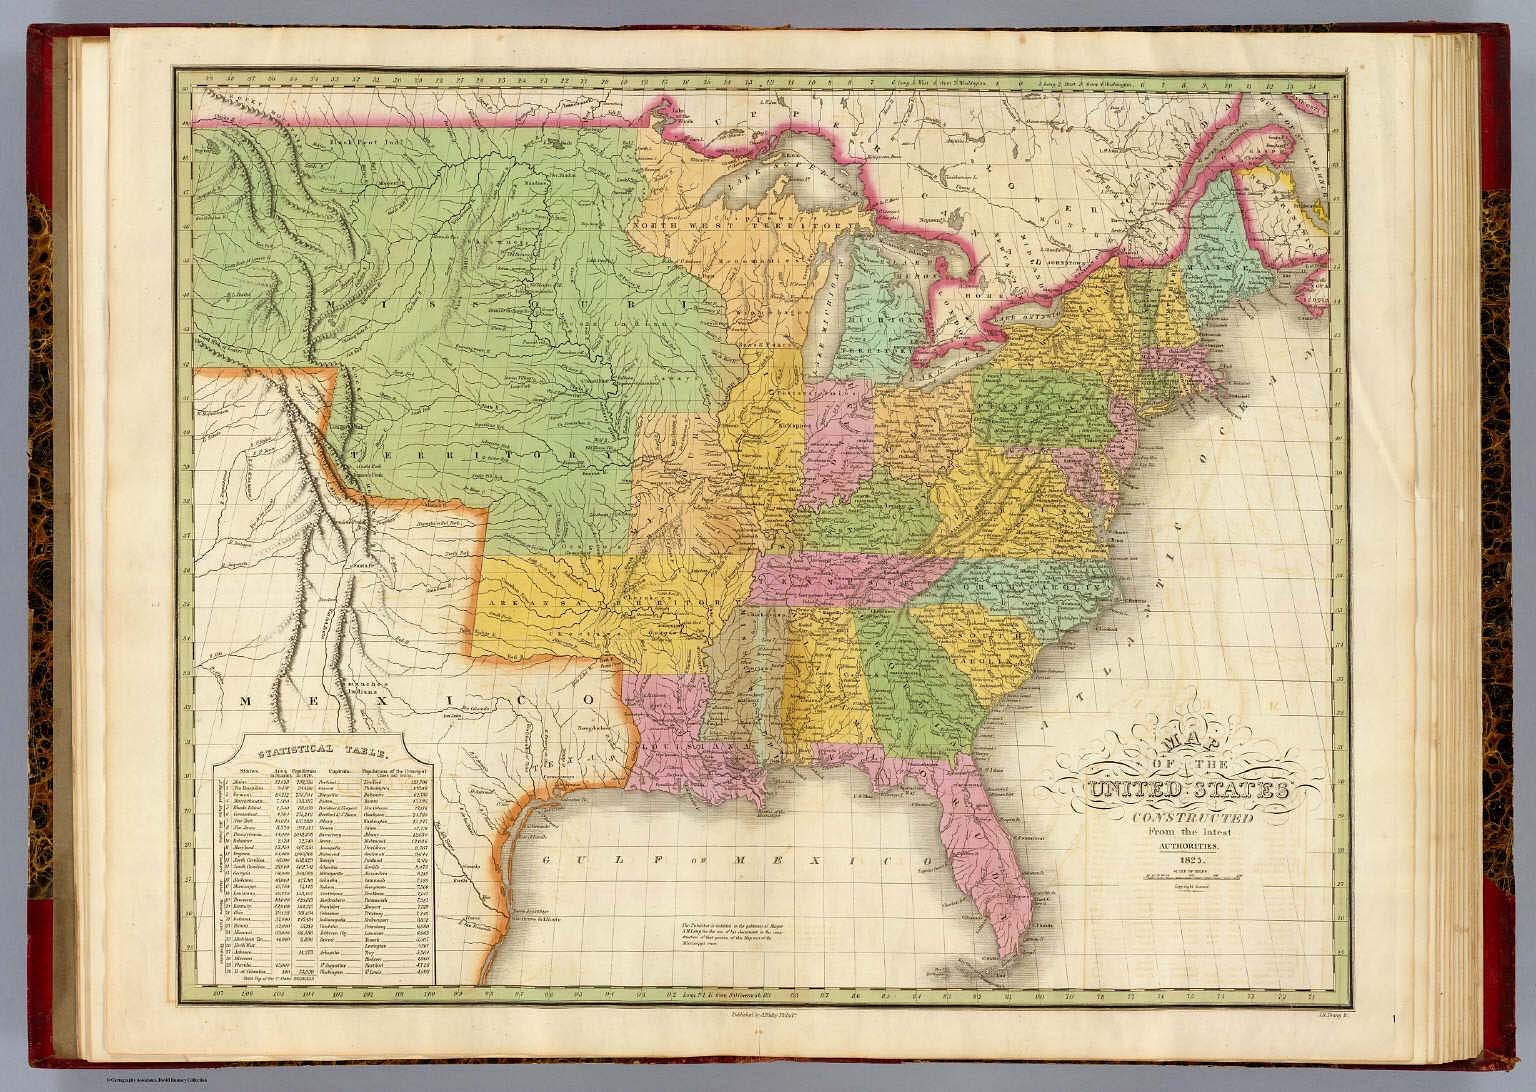 Map of the United States. / Finley, Anthony / 1826